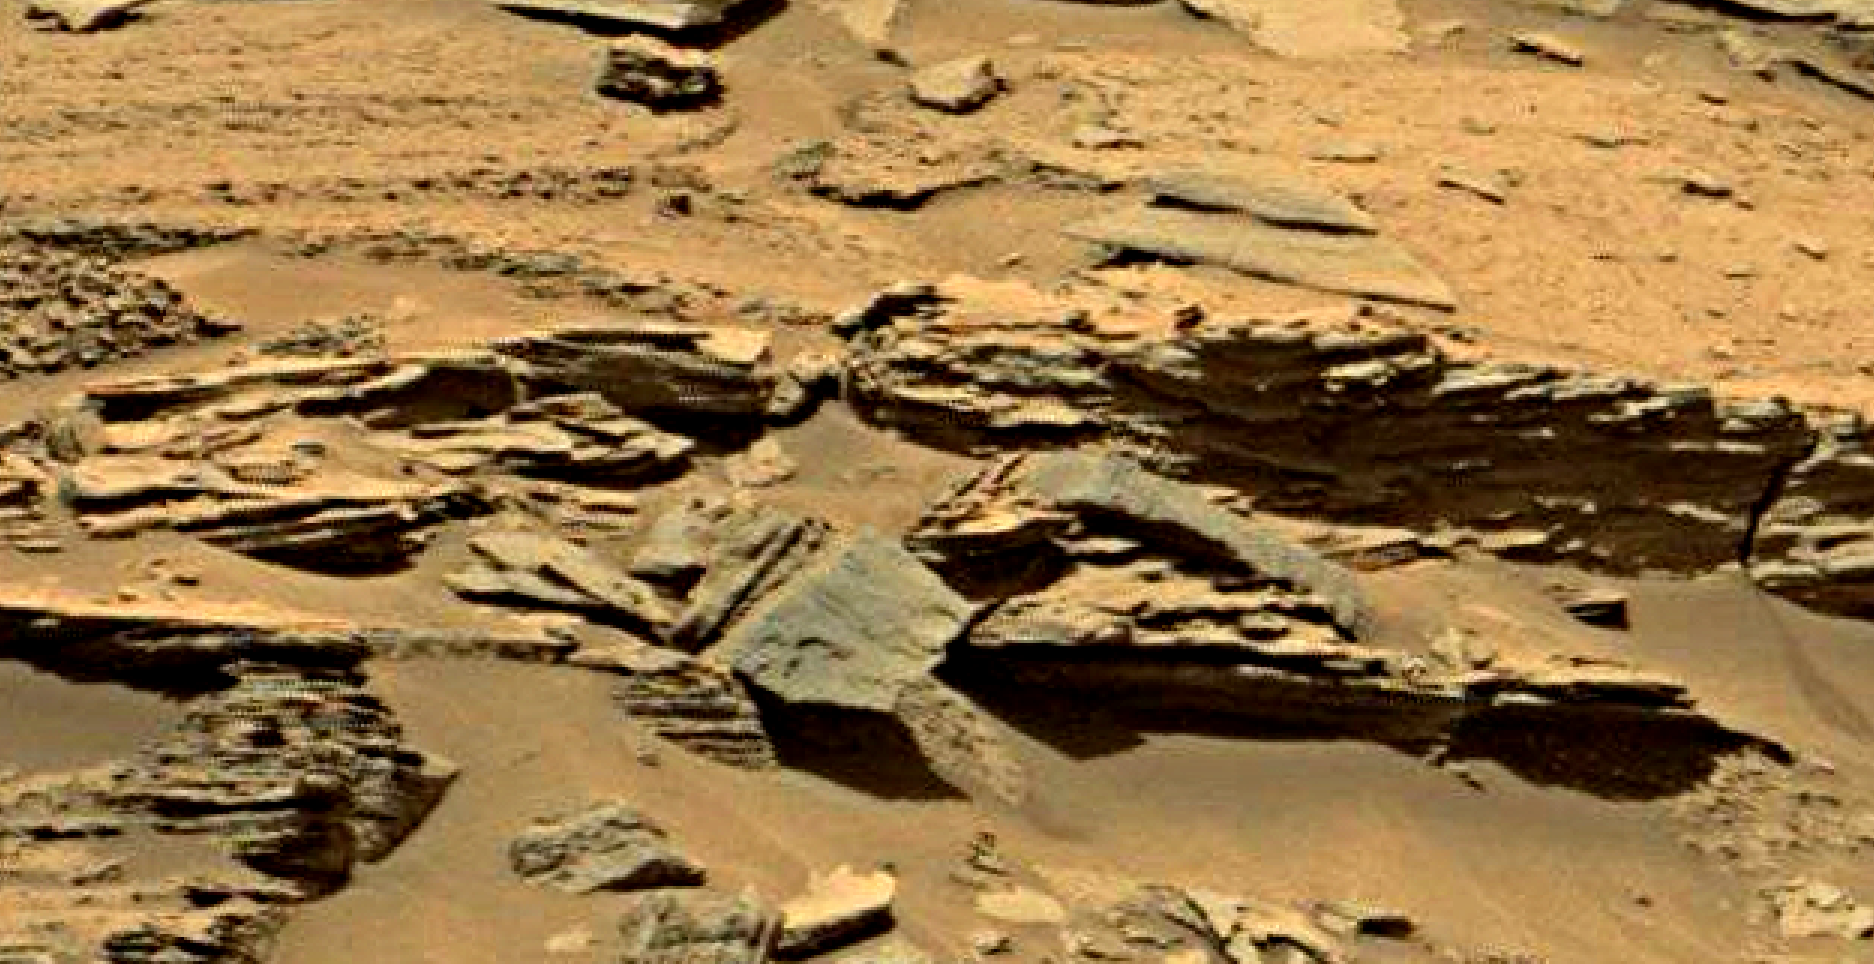 mars sol 1353 anomaly-artifacts 30-1 was life on mars